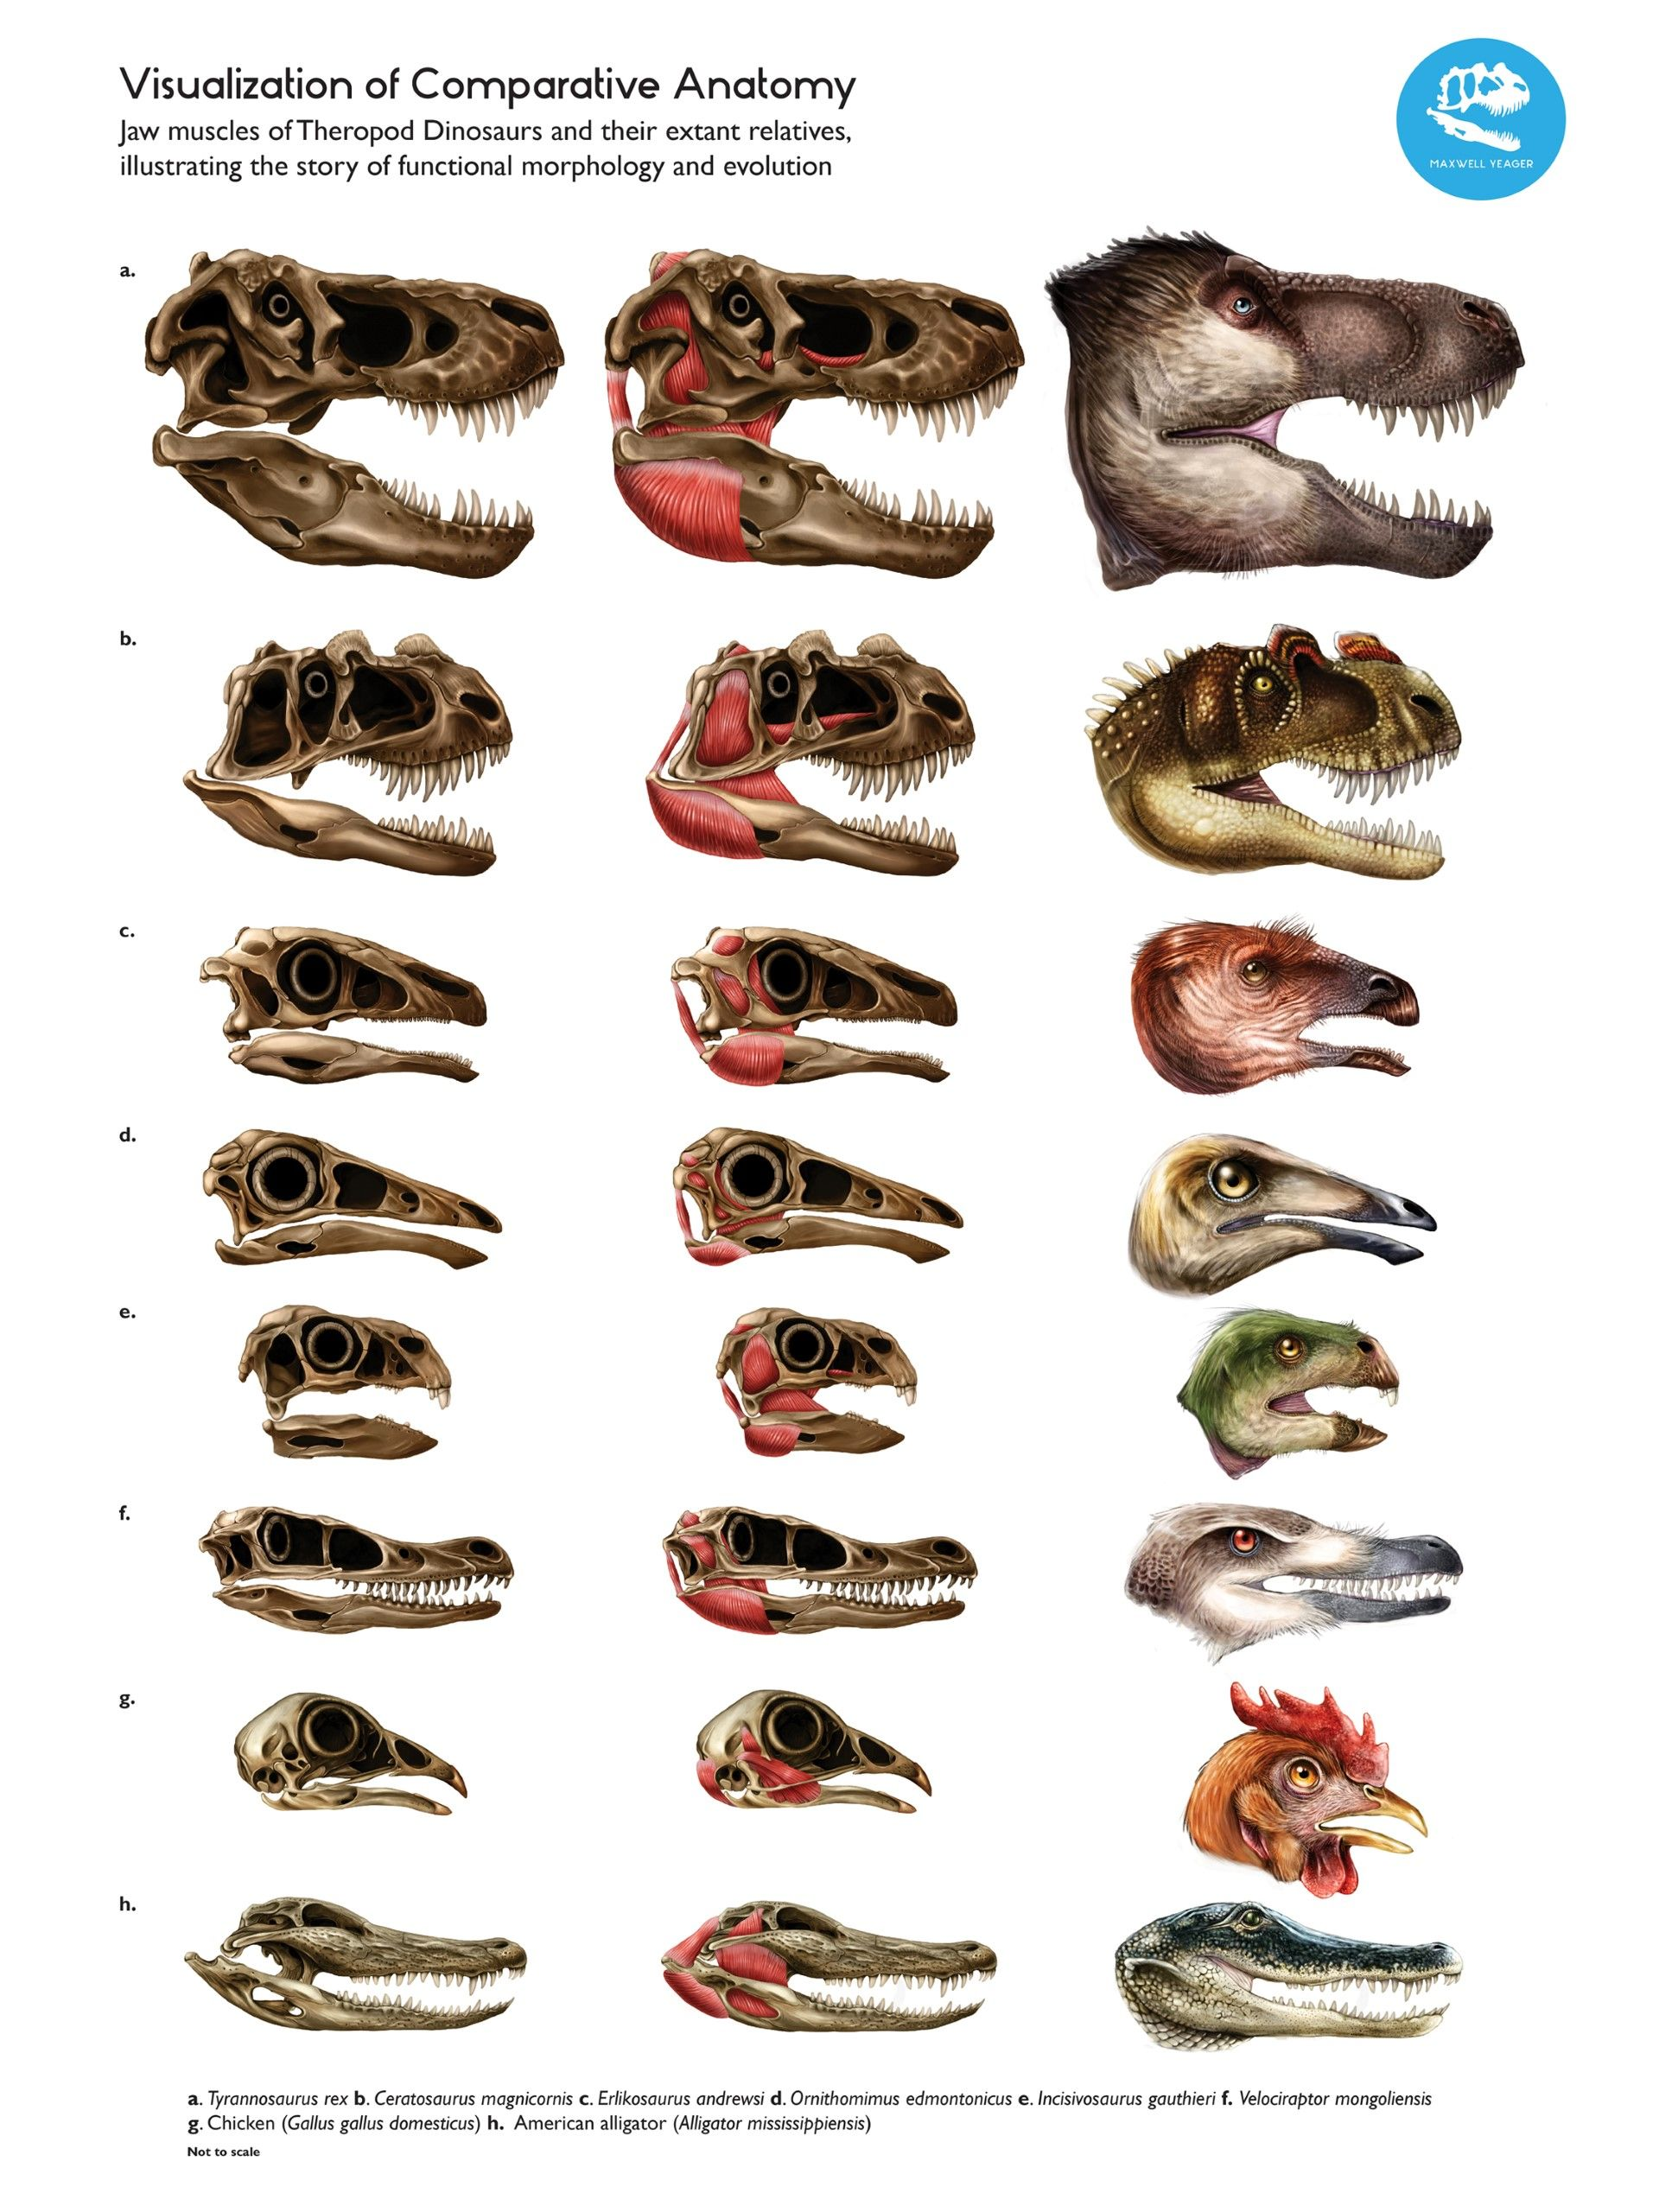 Jaw Anatomy of Theropods and Relatives | biomed illustration- good ...